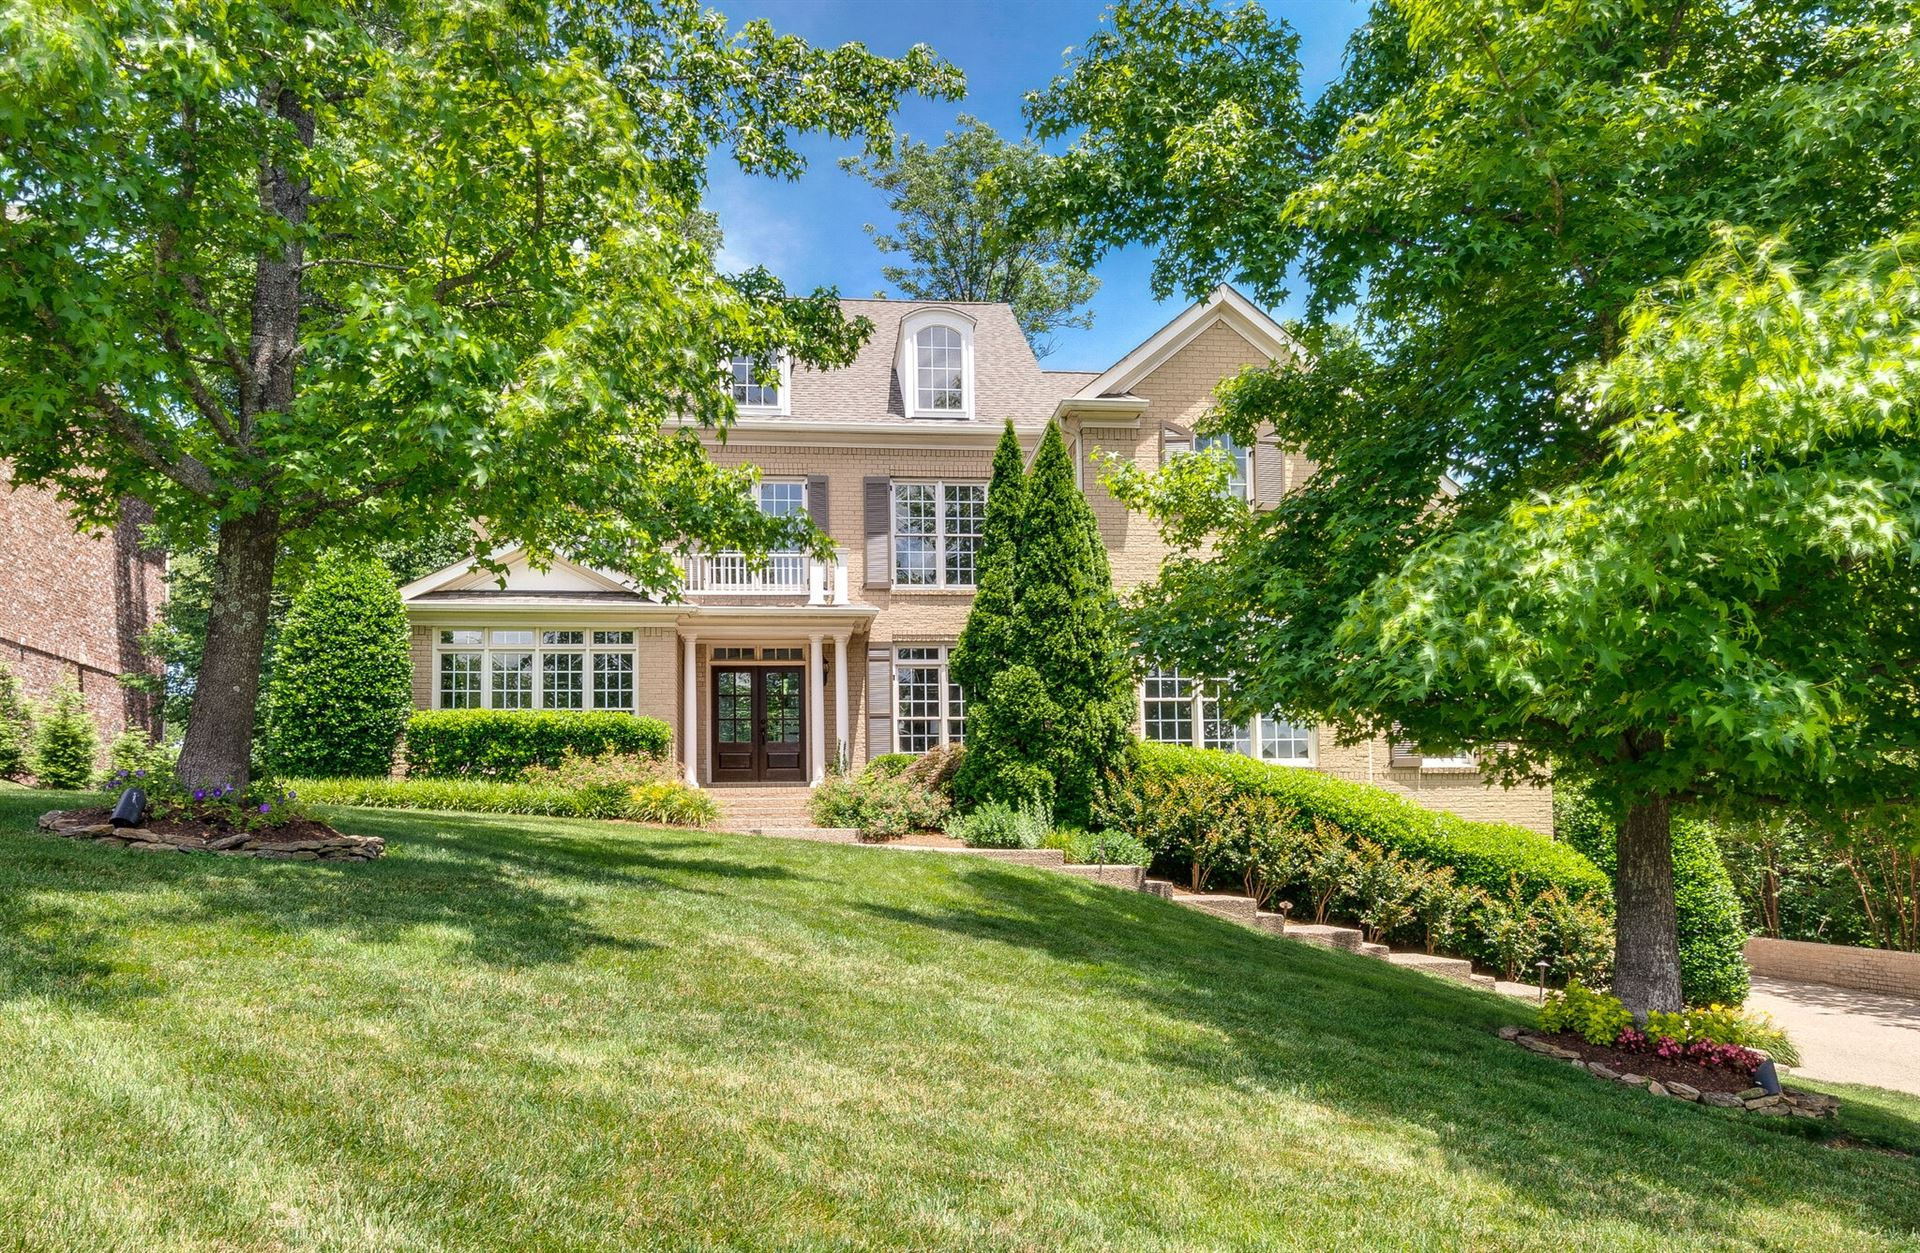 Photo of 96 Governors Way, Brentwood, TN 37027 (MLS # 2260761)